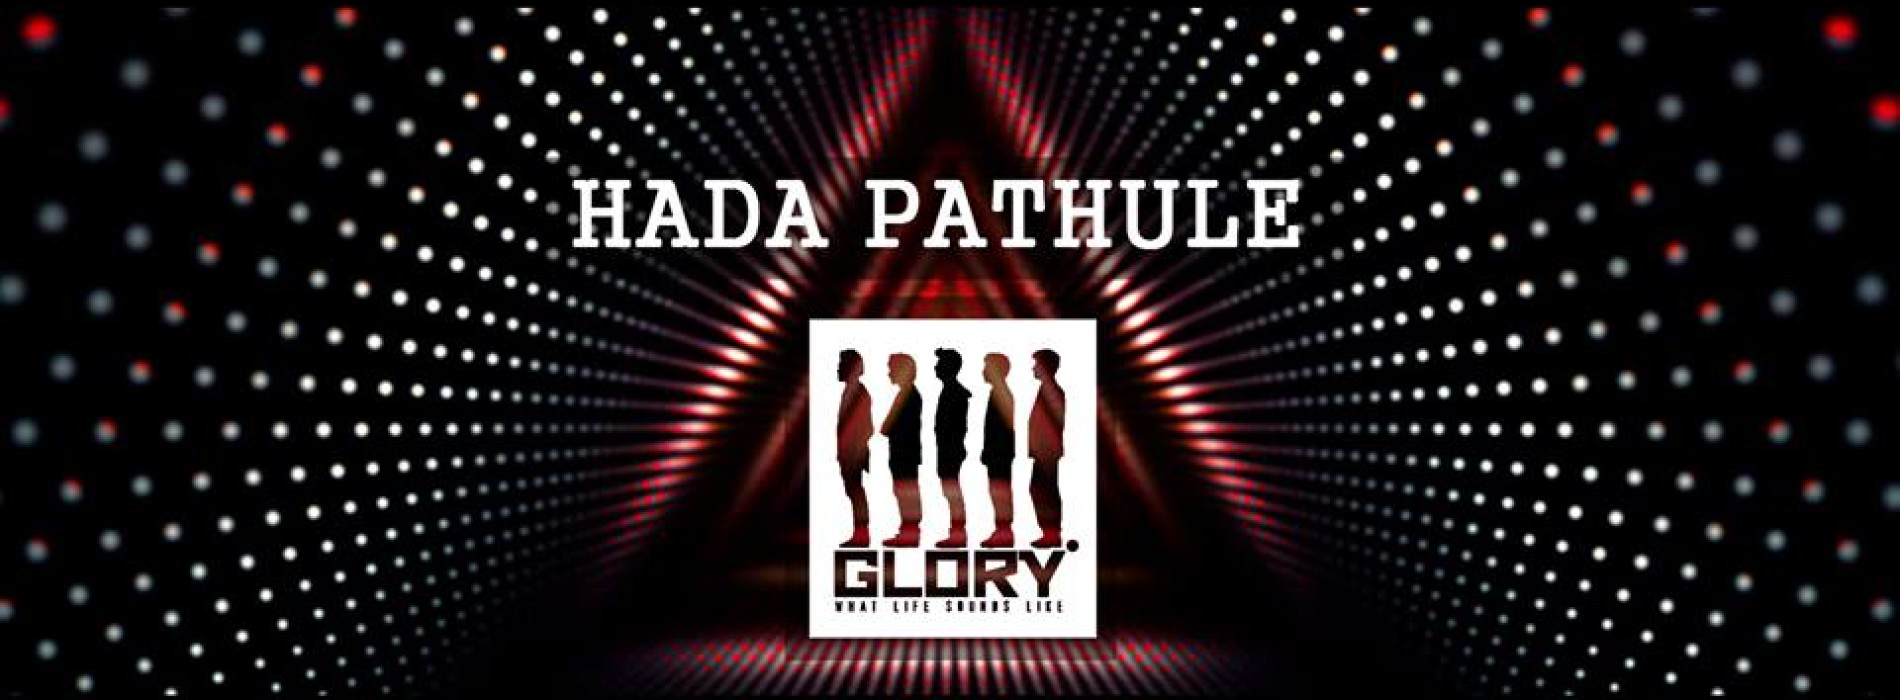 GLORY – Hada Pathule (Official Music Video)